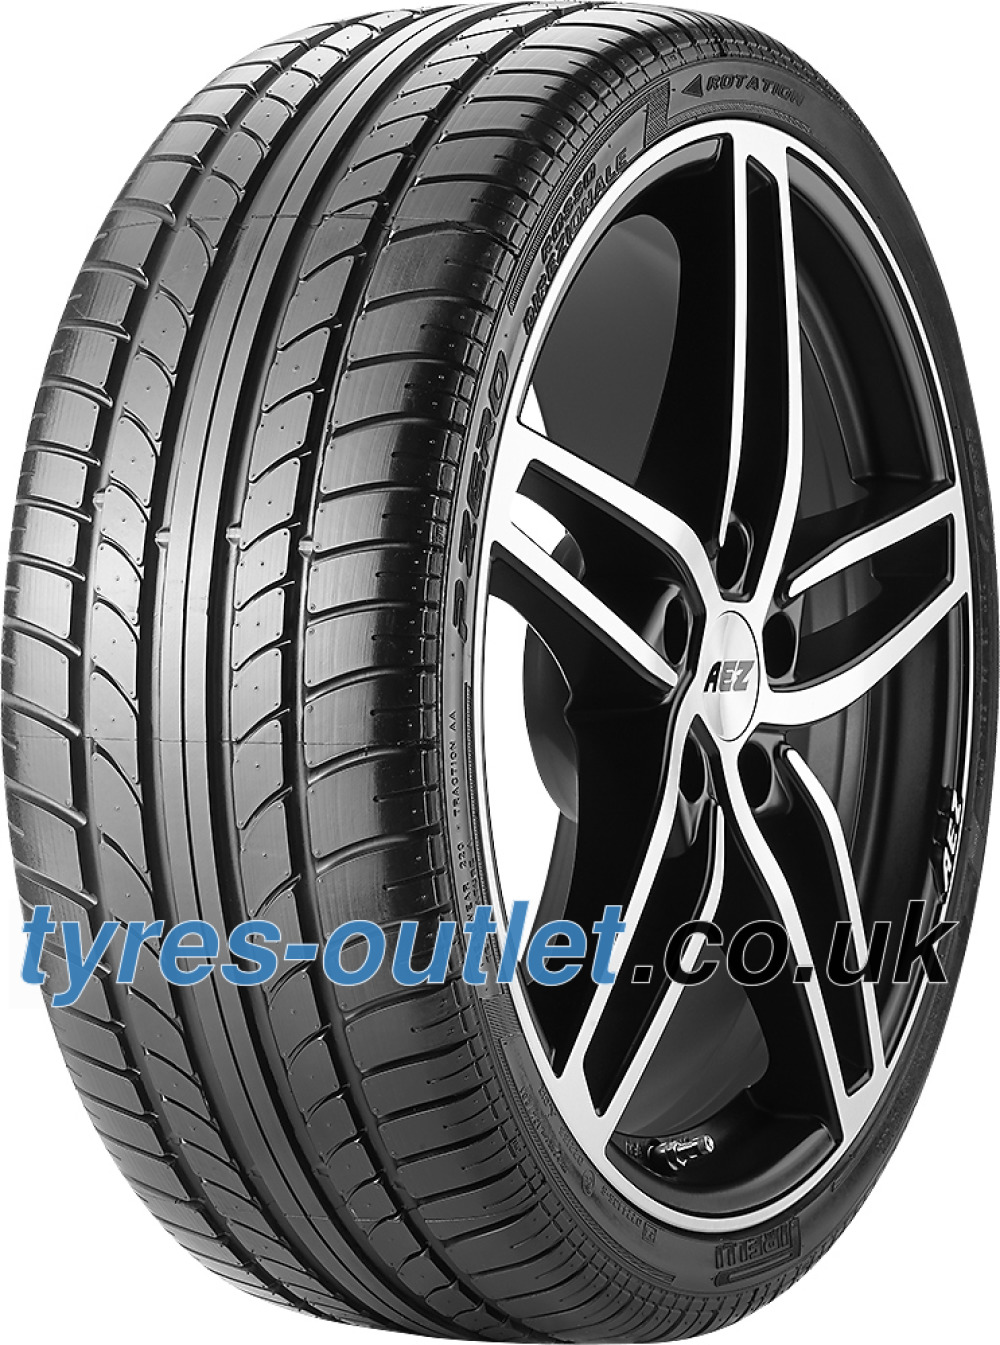 Pirelli P Zero Corsa Direzionale ( 205/45 ZR17 88Y XL LS, with rim protection (MFS) )